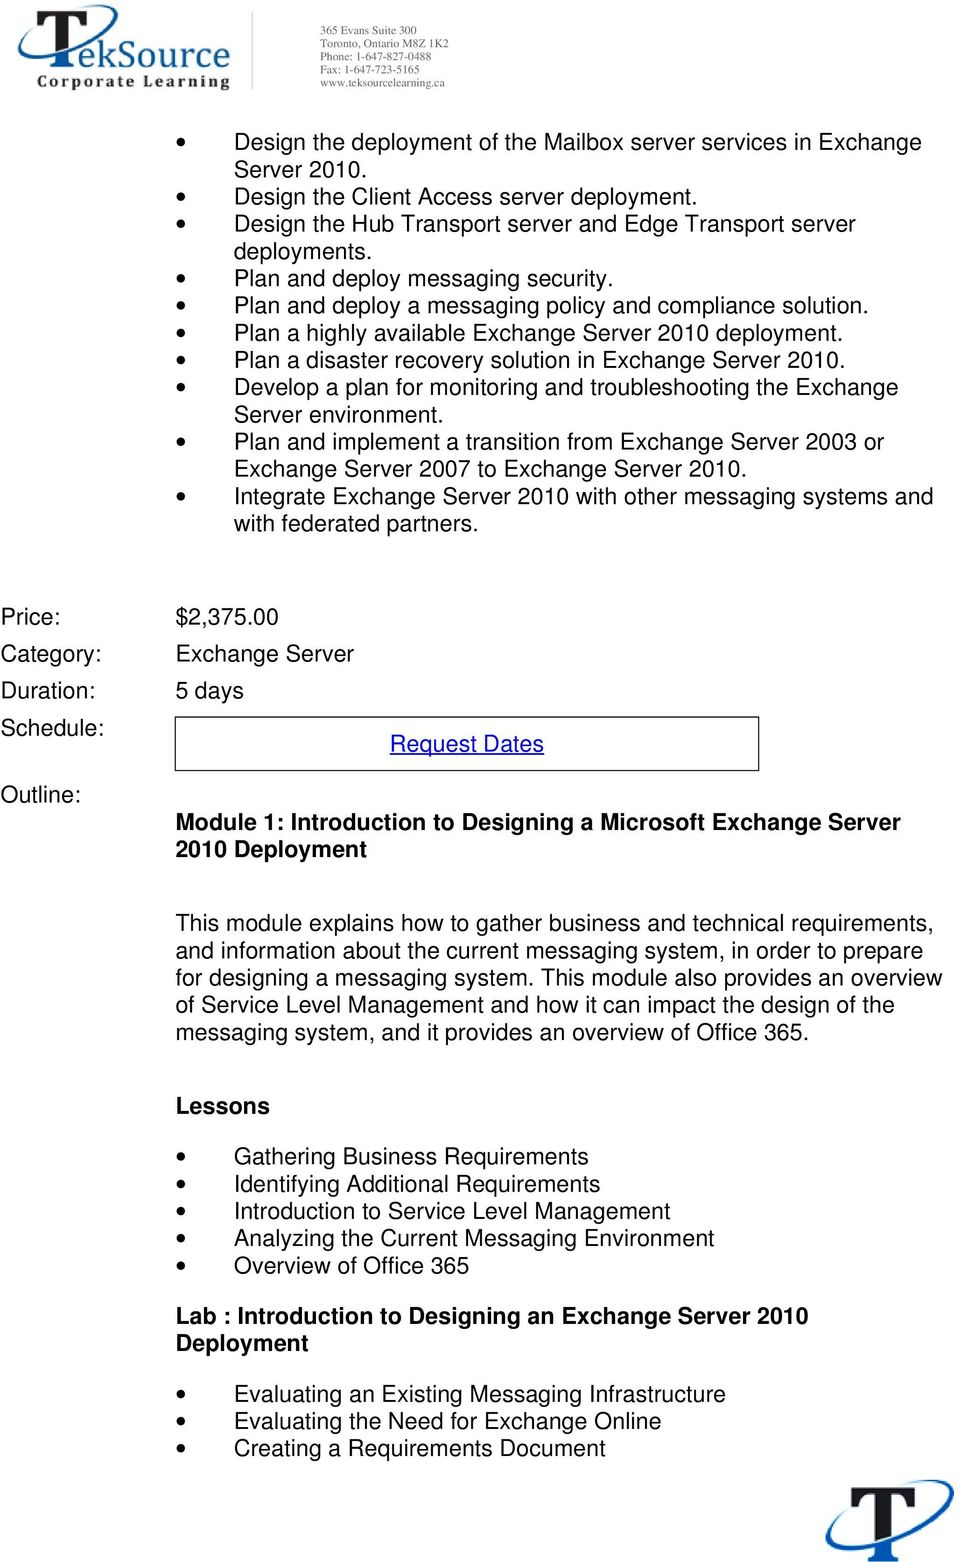 Plan a disaster recovery solution in Exchange Server 2010. Develop a plan for monitoring and troubleshooting the Exchange Server environment.